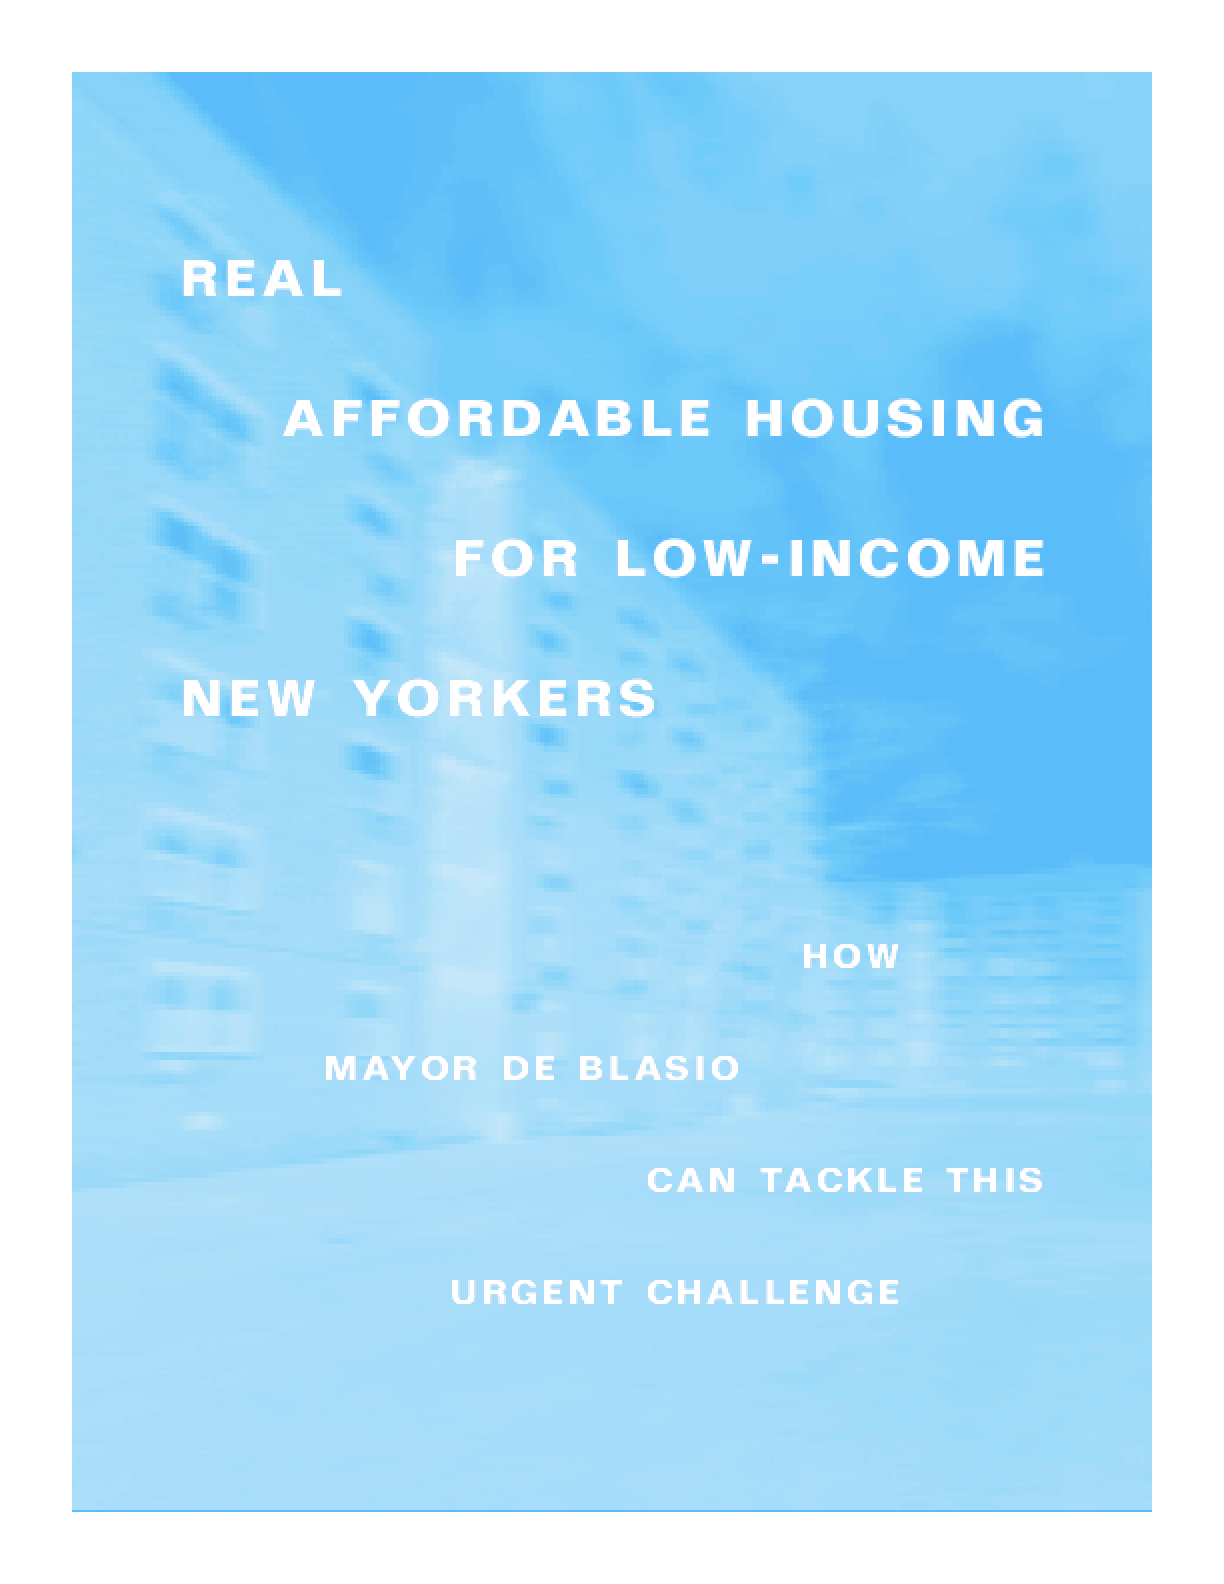 Real Affordable Housing for New Yorkers: How Mayor de Blasio Can Tackle this Urgent Challenge